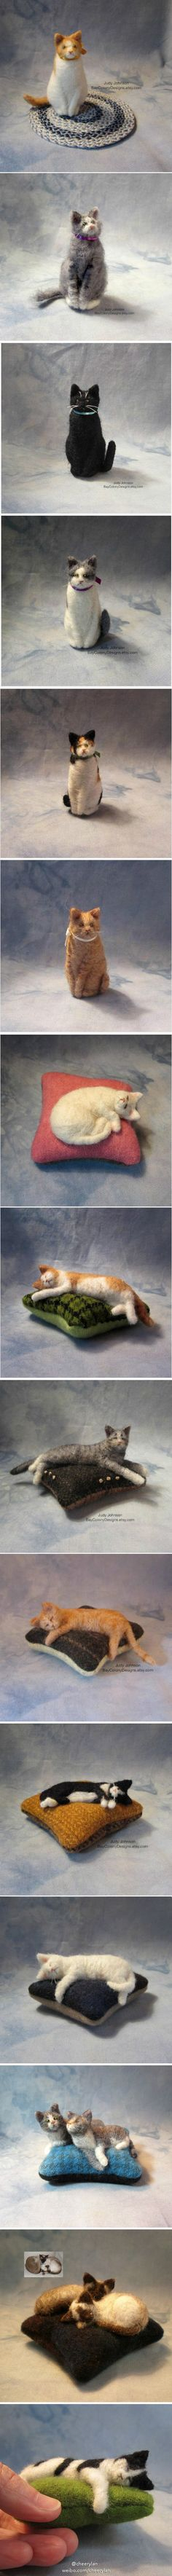 Judy Johnson (USA) - Felted Cats BayColonyDesigns